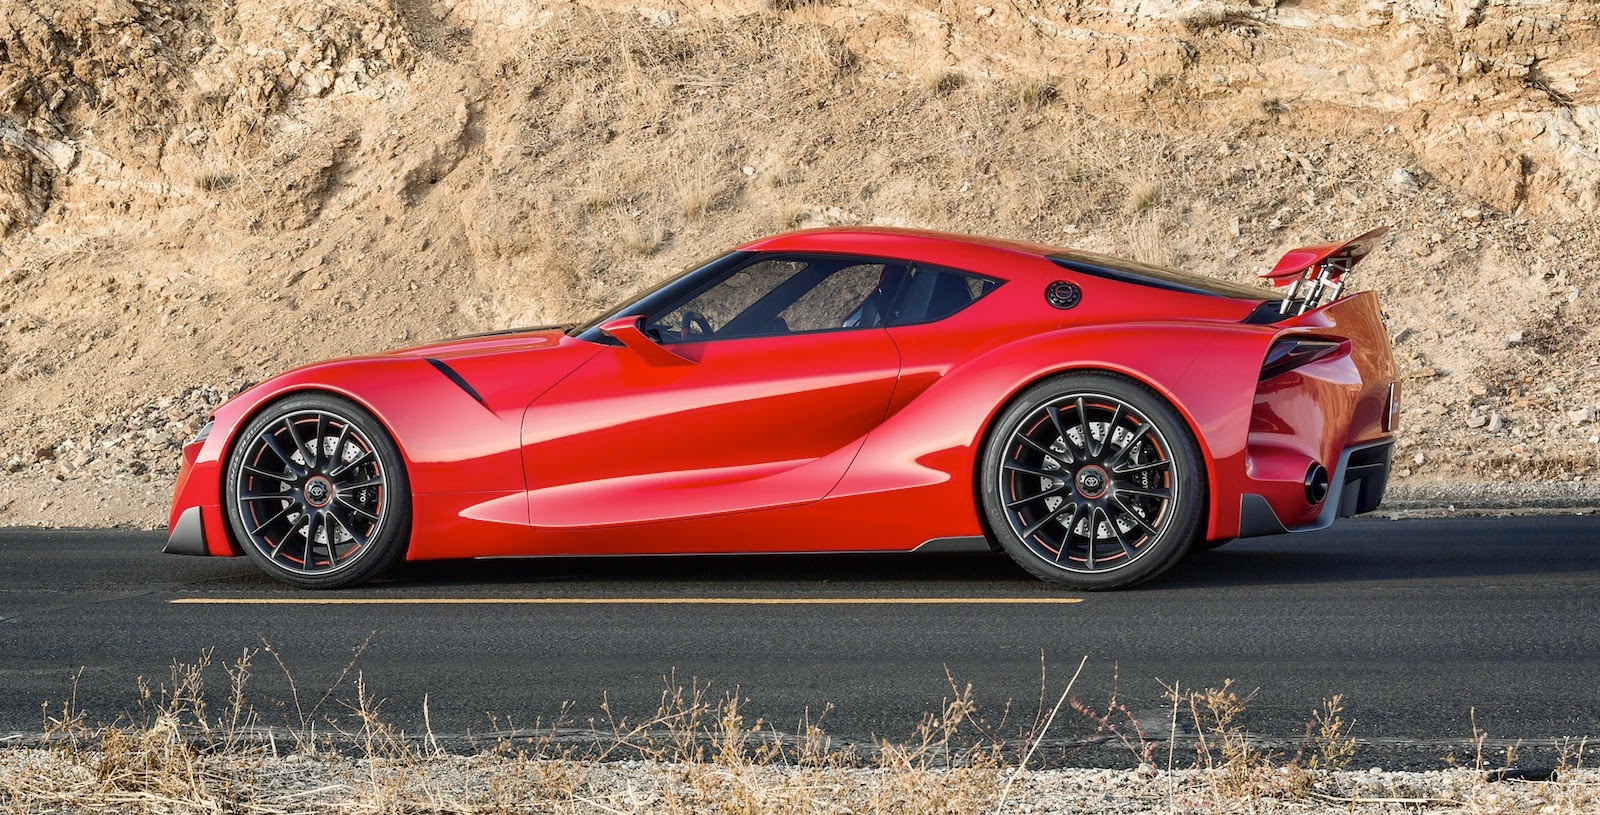 Toyota Supra Bmw Z4 Sports Cars To Share Platform